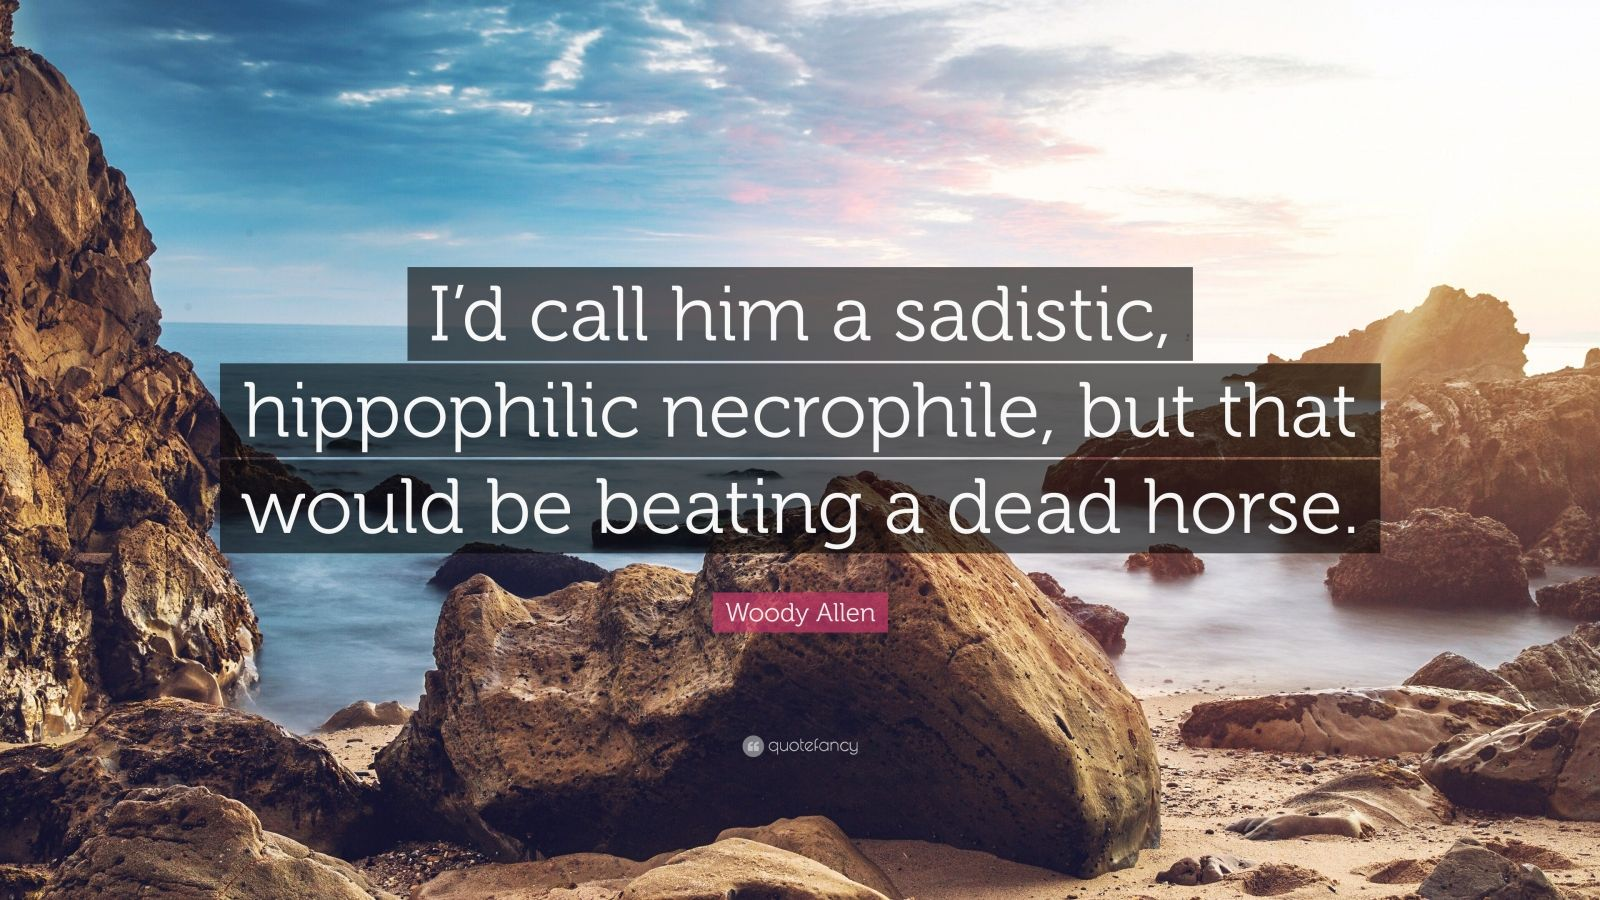 """Woody Allen Quote: """"I'd call him a sadistic, hippophilic necrophile, but that would be beating a dead horse."""""""